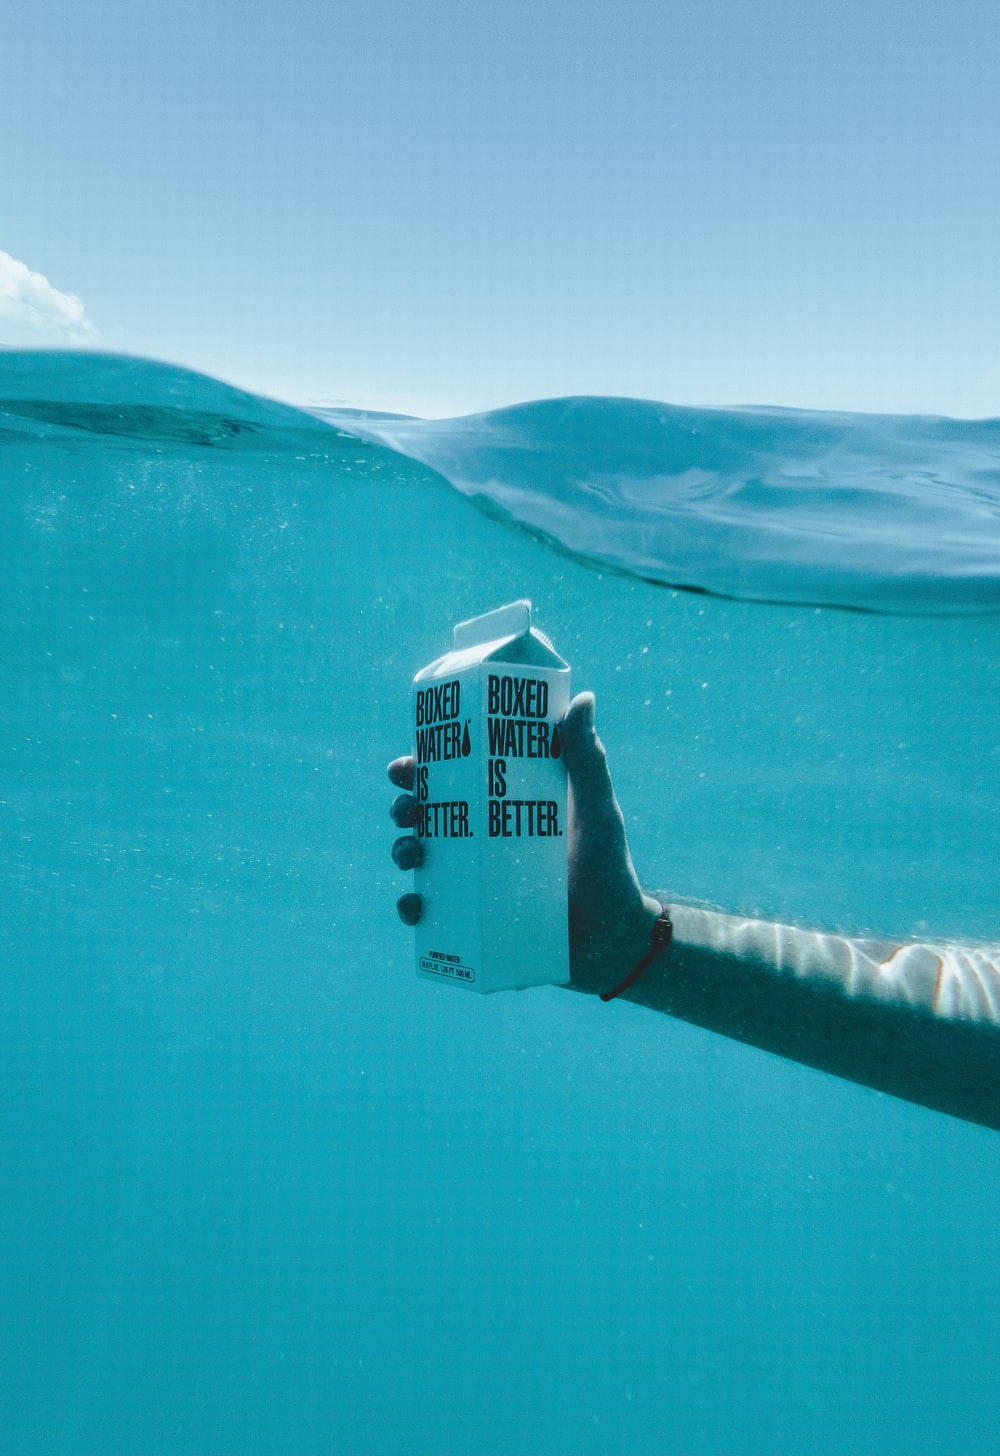 person holding boxed water underwater